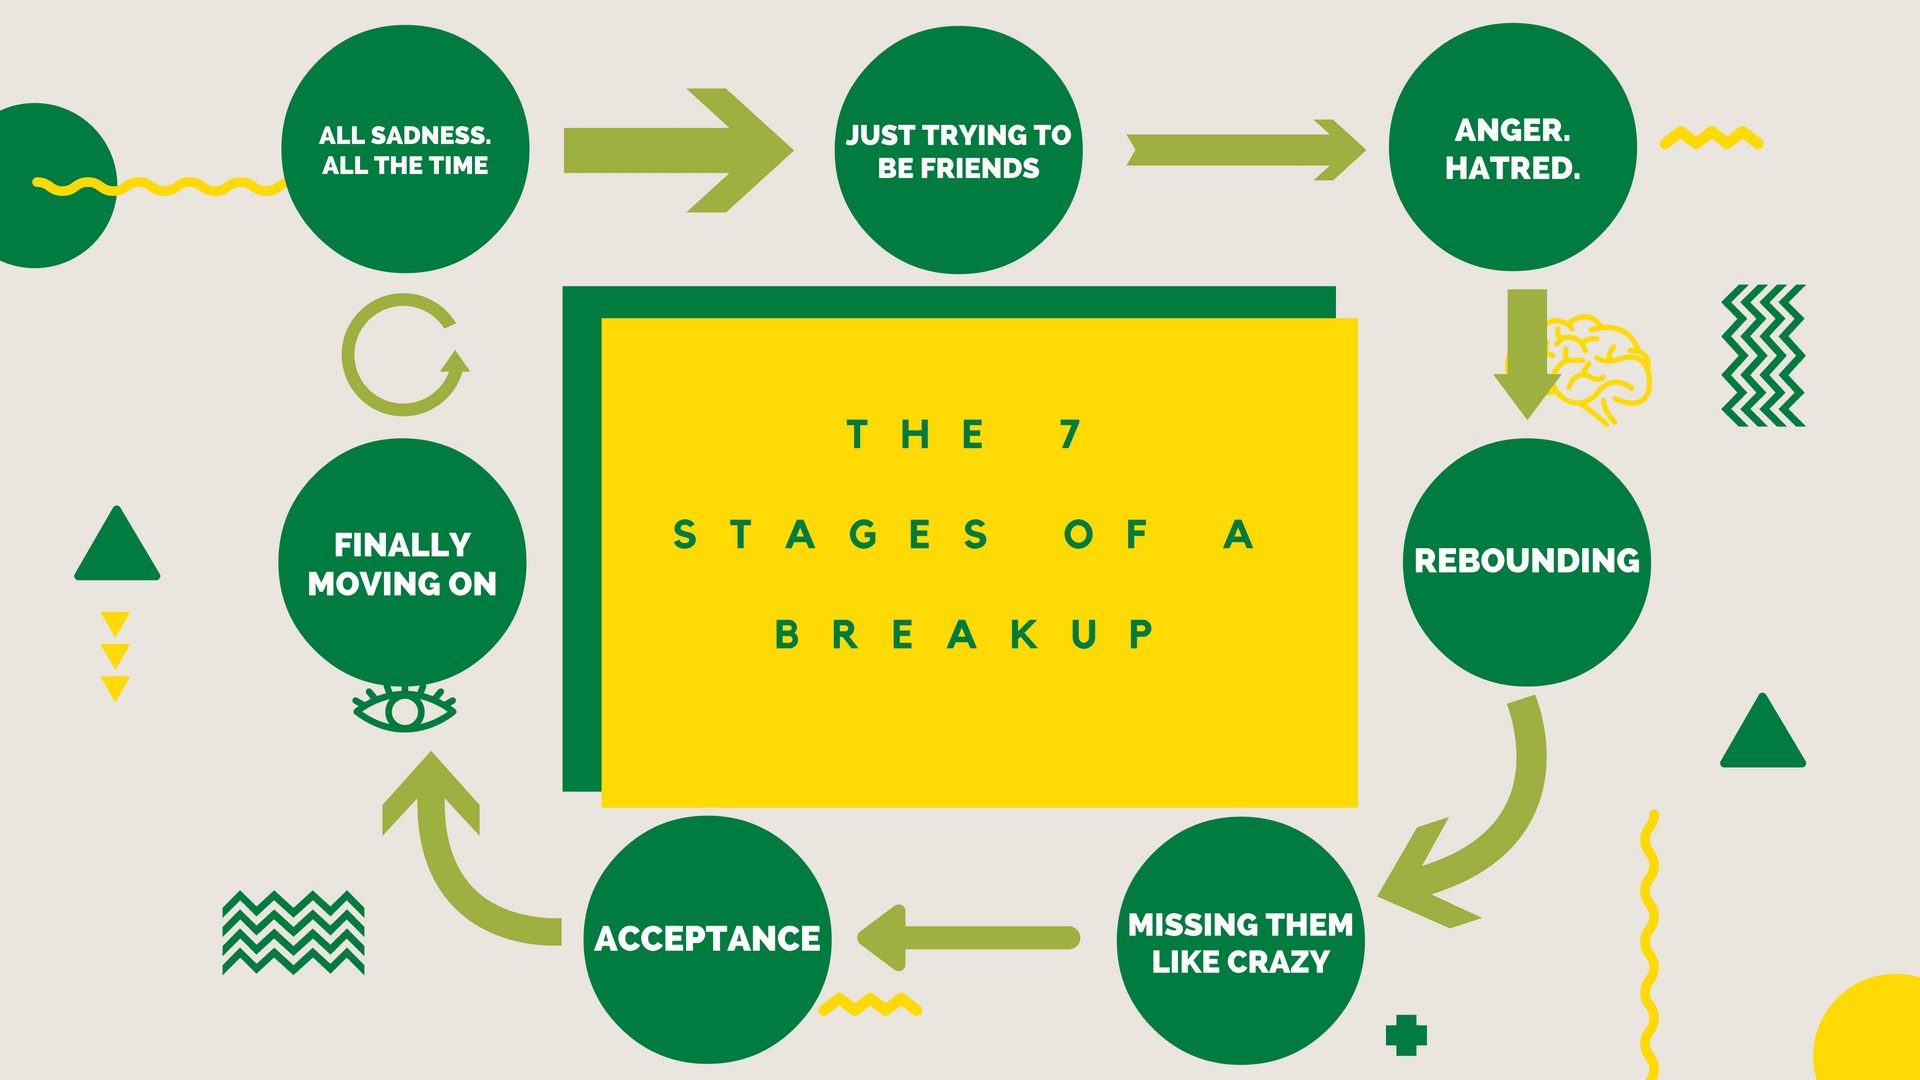 The 7 Stages of a Breakup and 7 Ways University Students ...